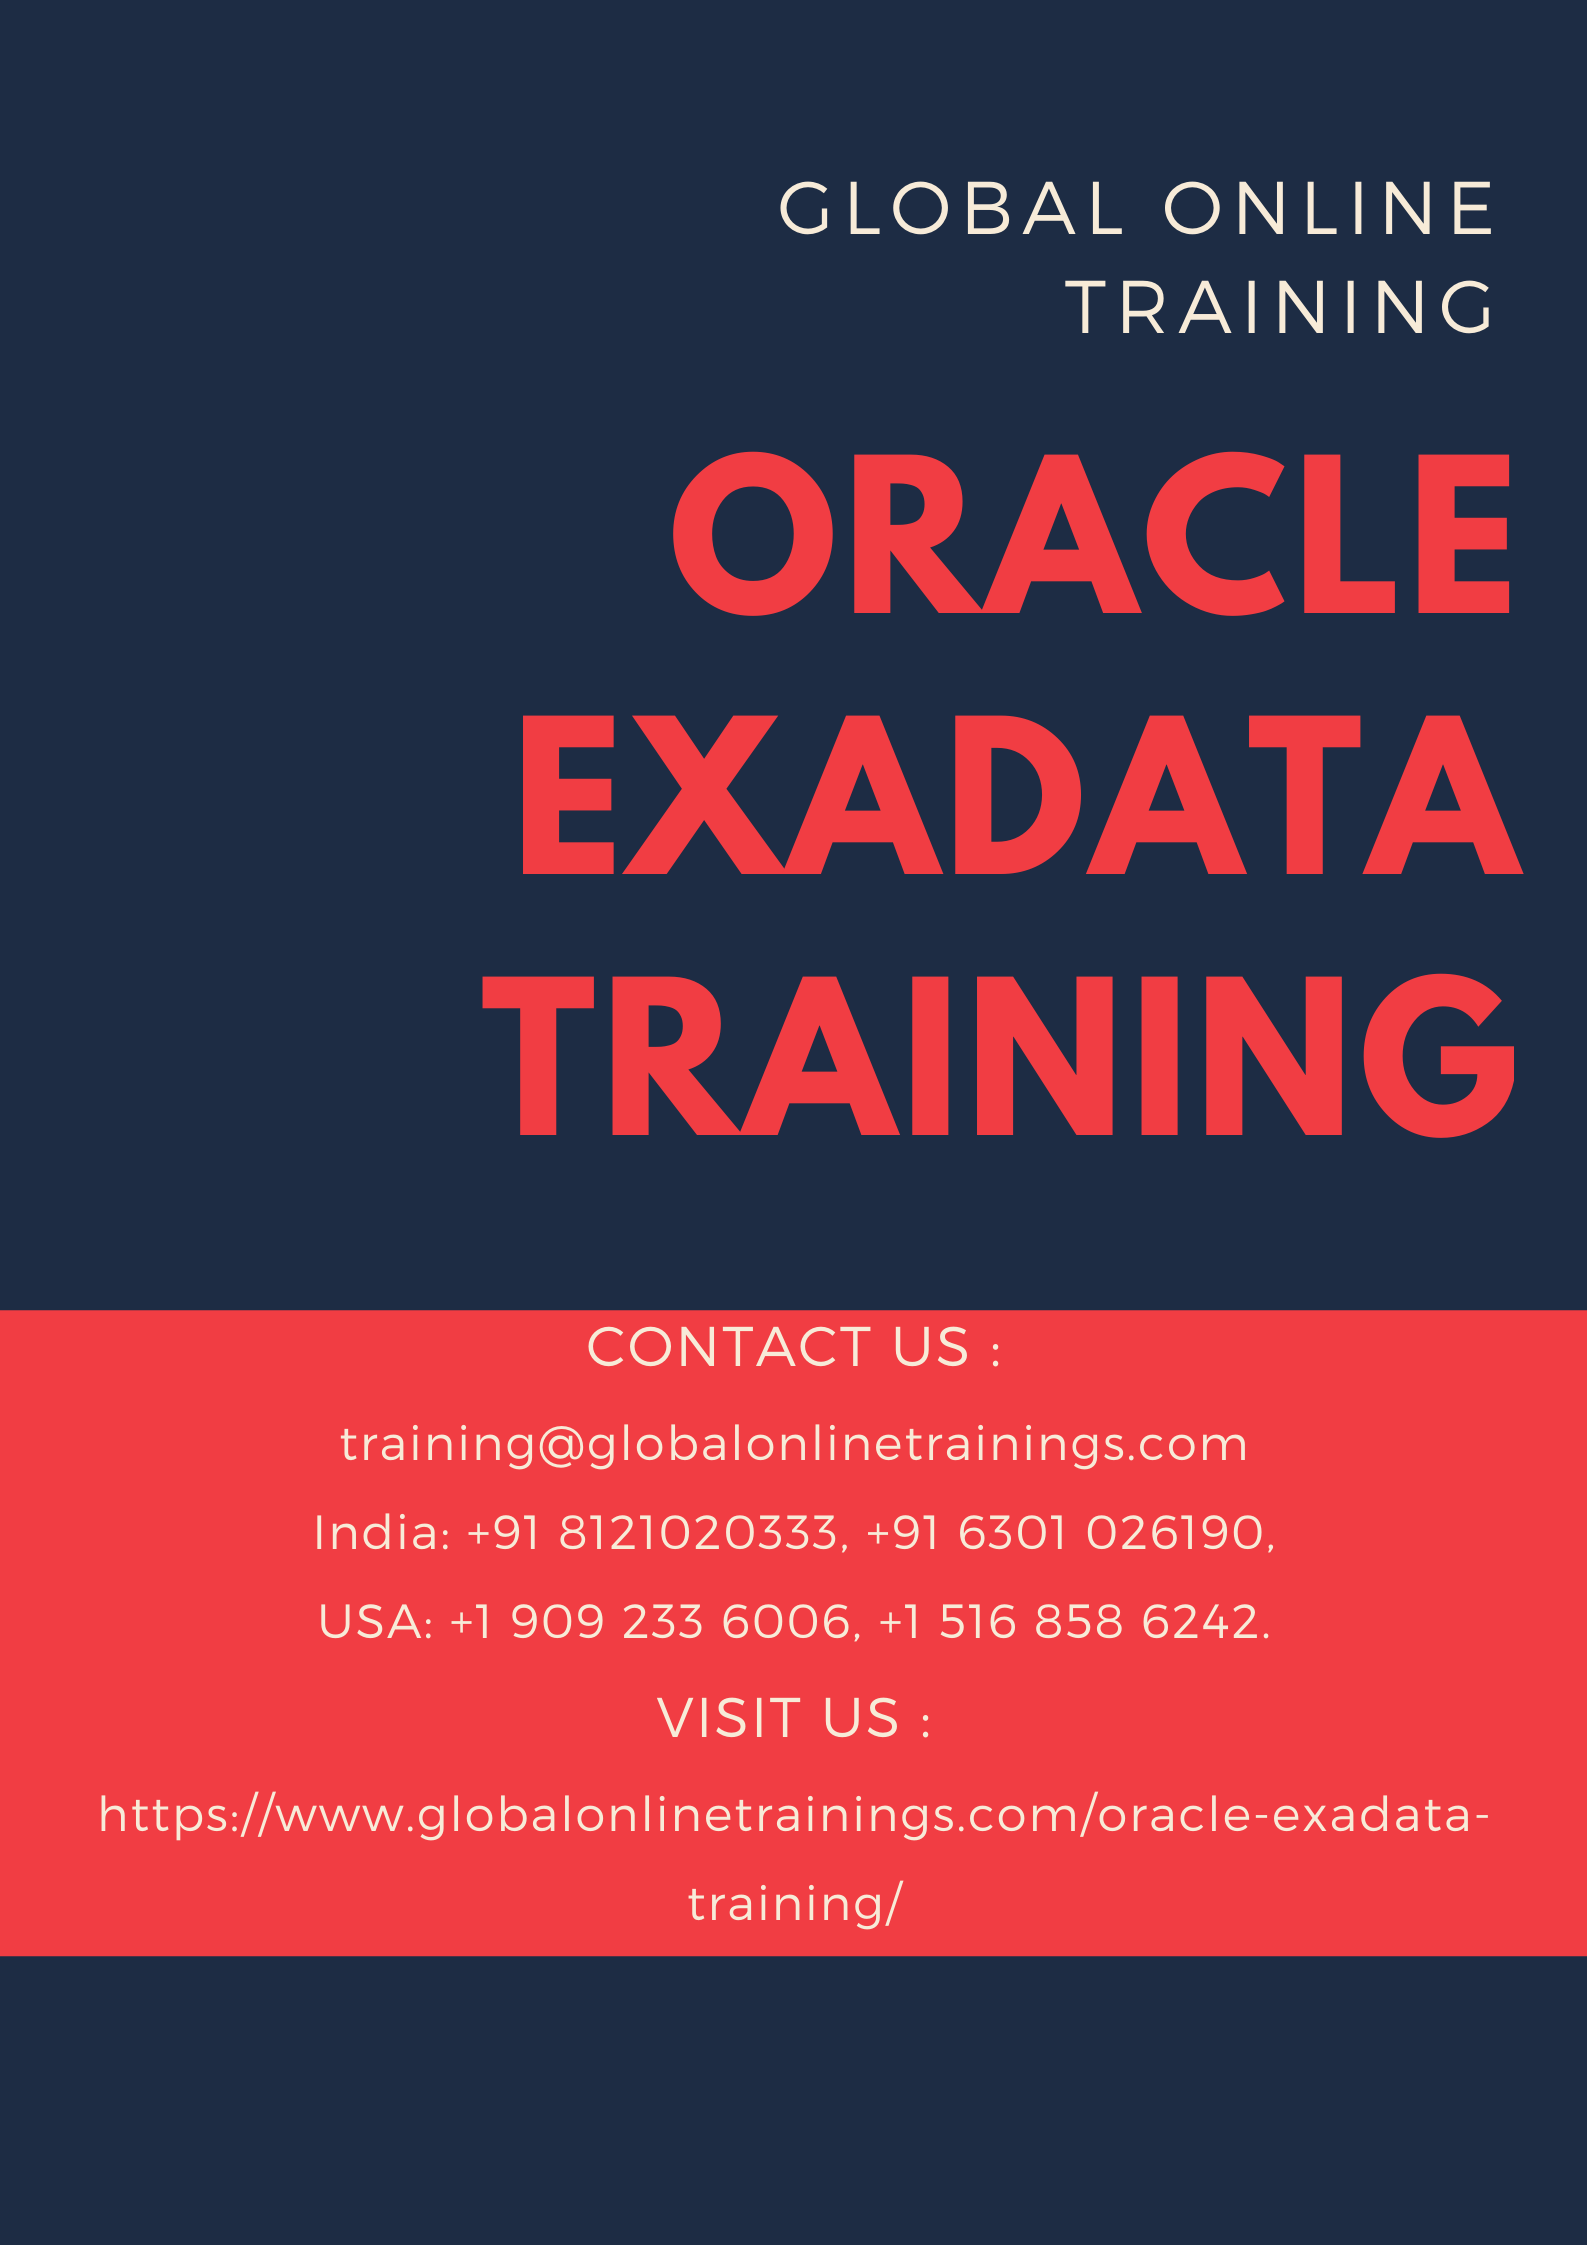 Oracle Exadata Training is an data appliance,fastest